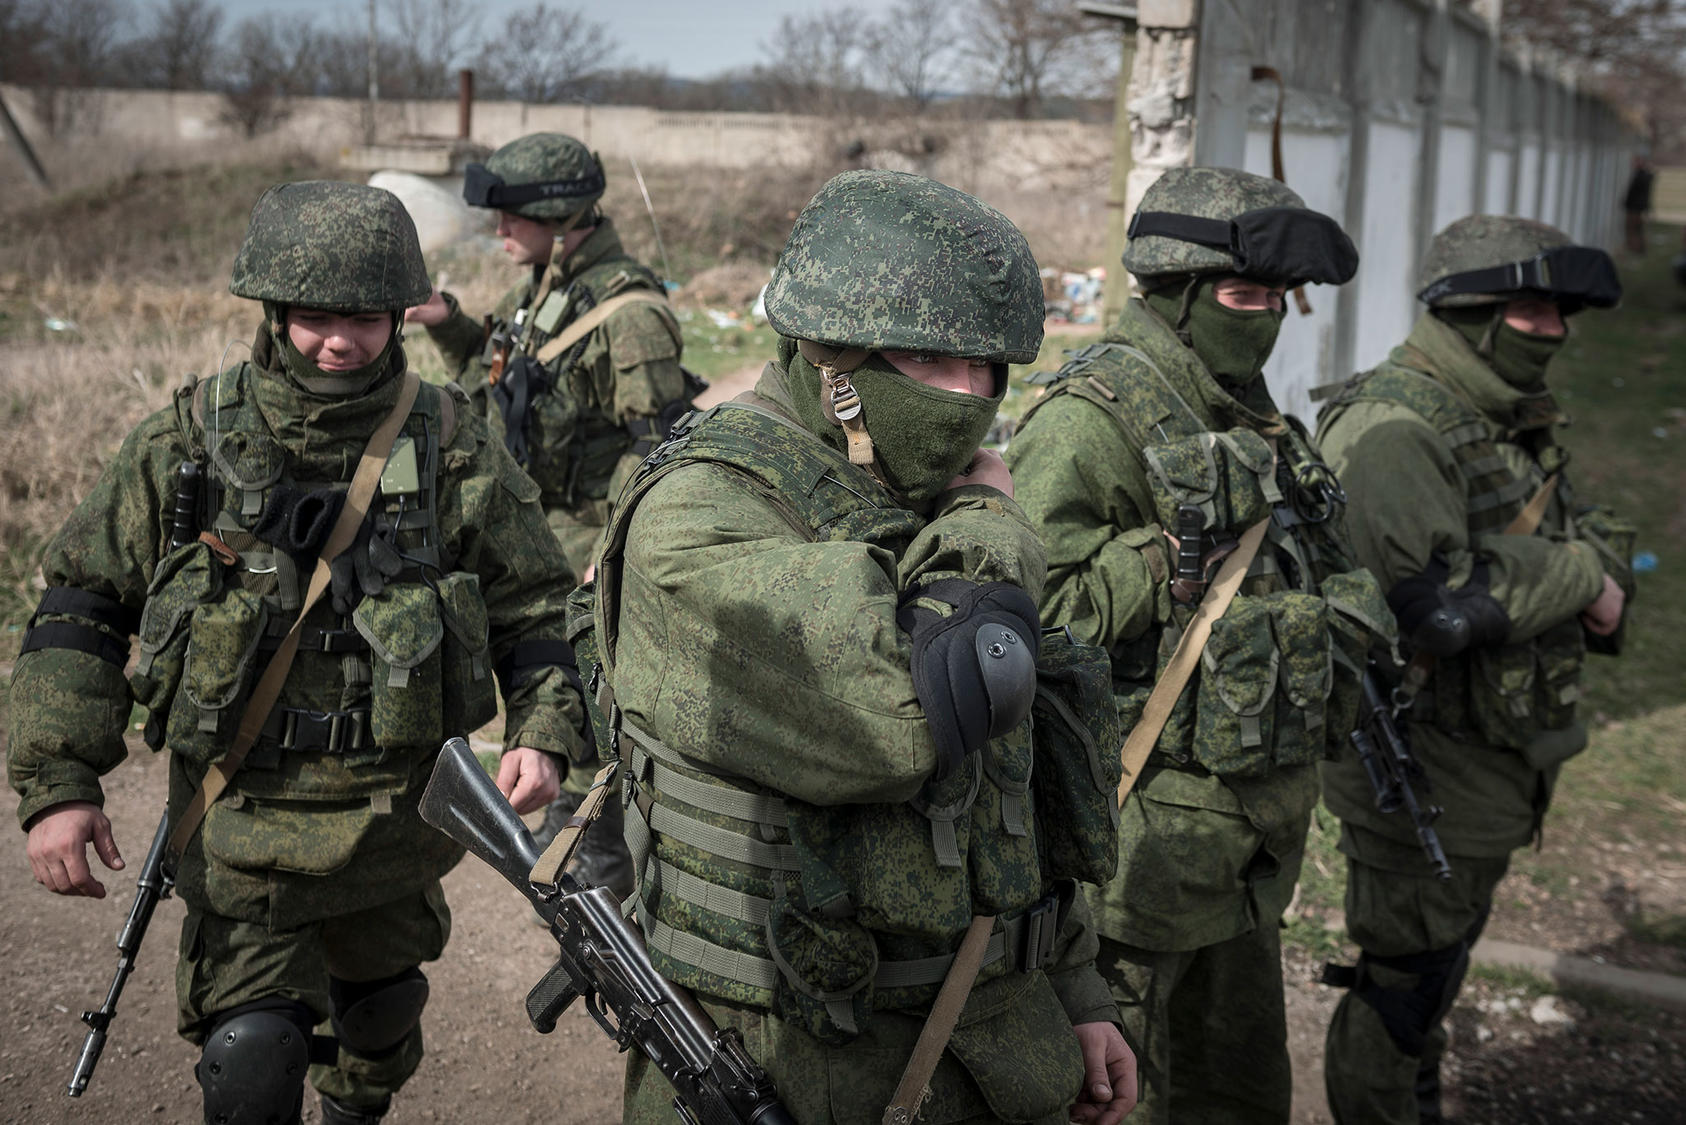 Unidentified soldiers in Crimea, March 6, 2014. Russia reclaimed the territory from Ukraine, and Russian President Vladimir Putin later admitted that the troops were Russian special forces. (Sergey Ponomarev/The New York Times)